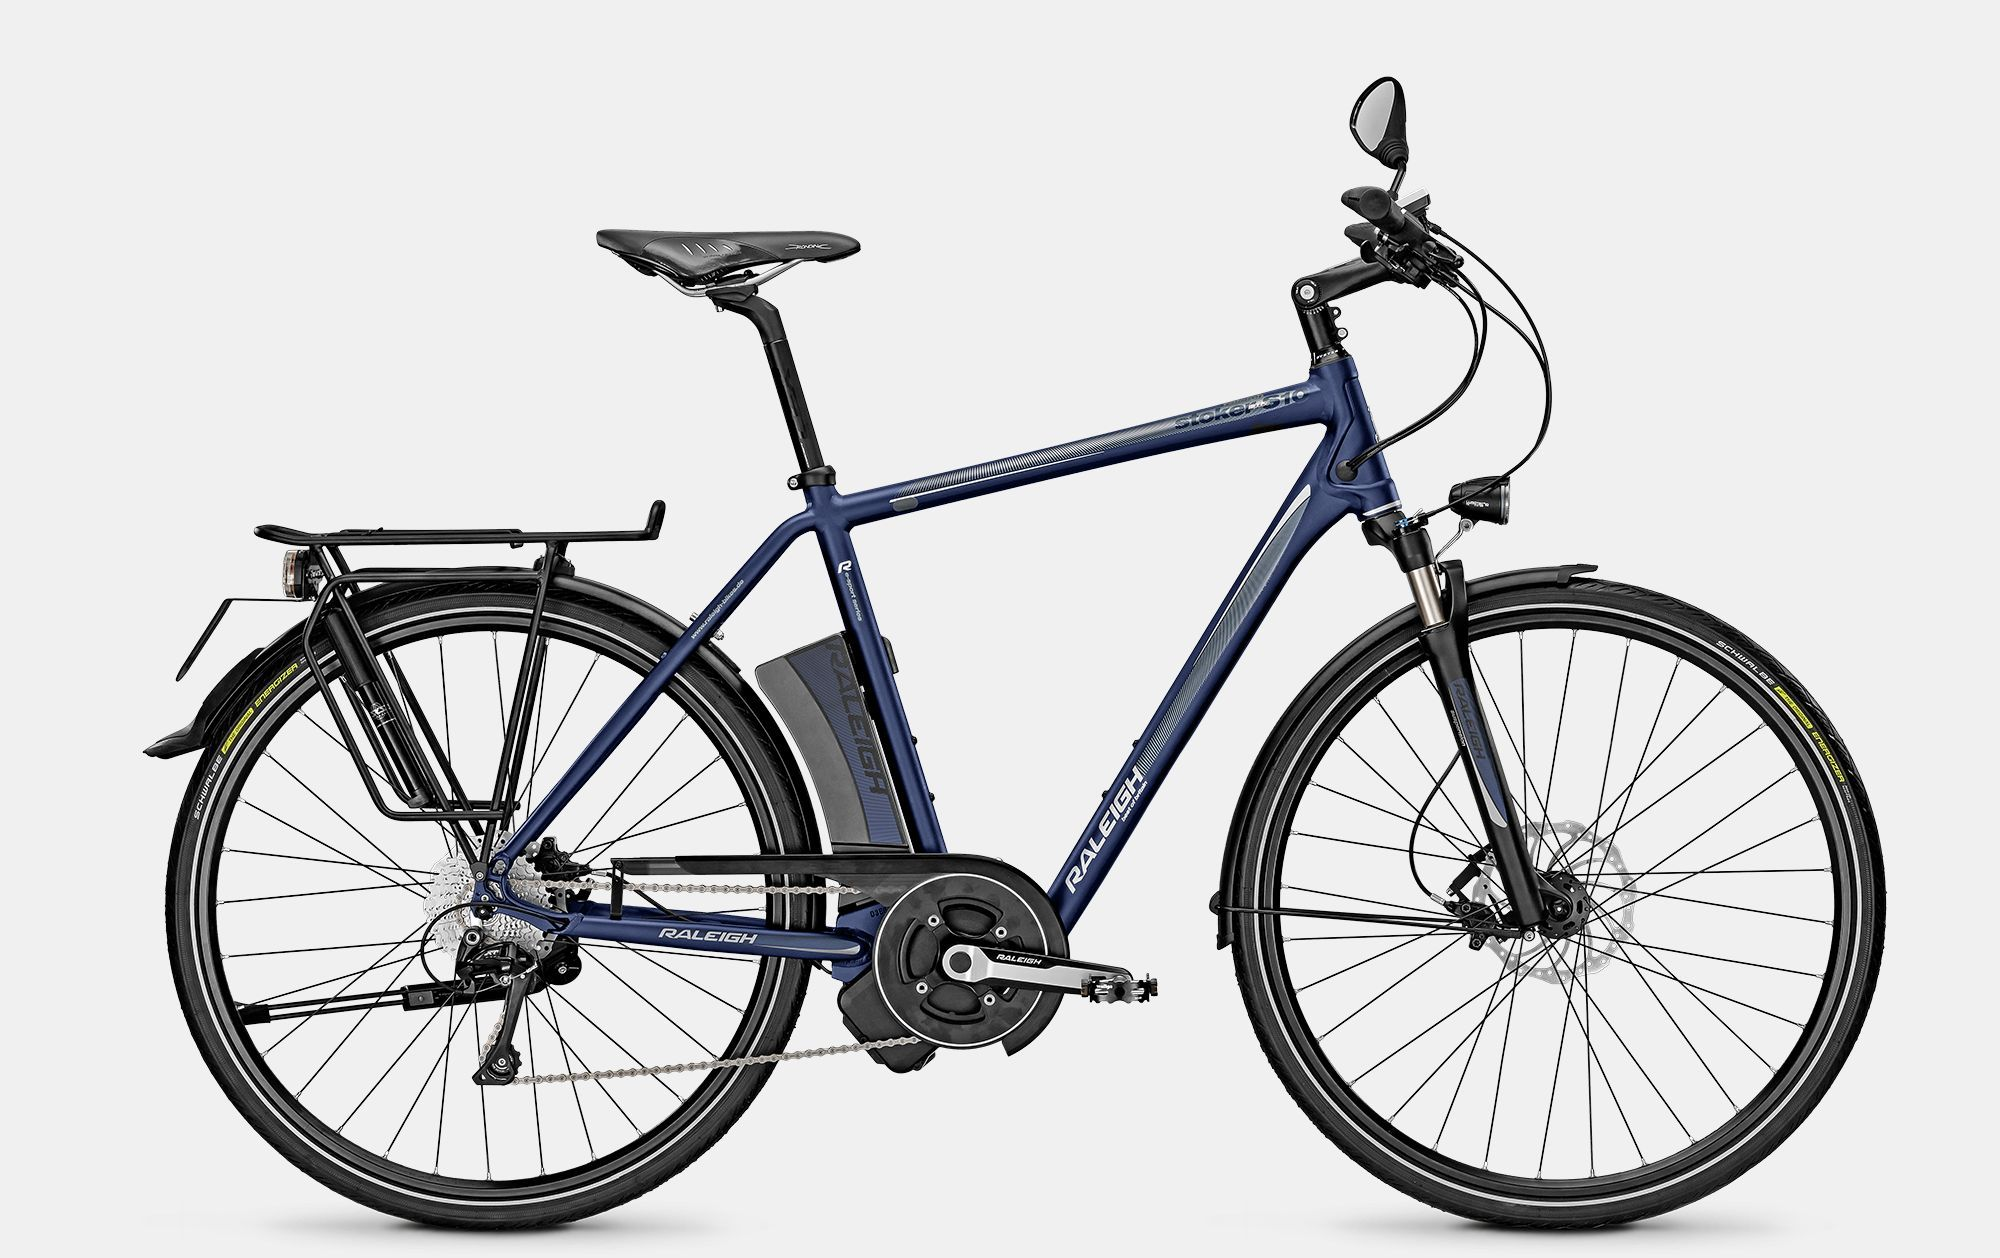 Raleigh Bikes Stoker Impulse S10 45 E